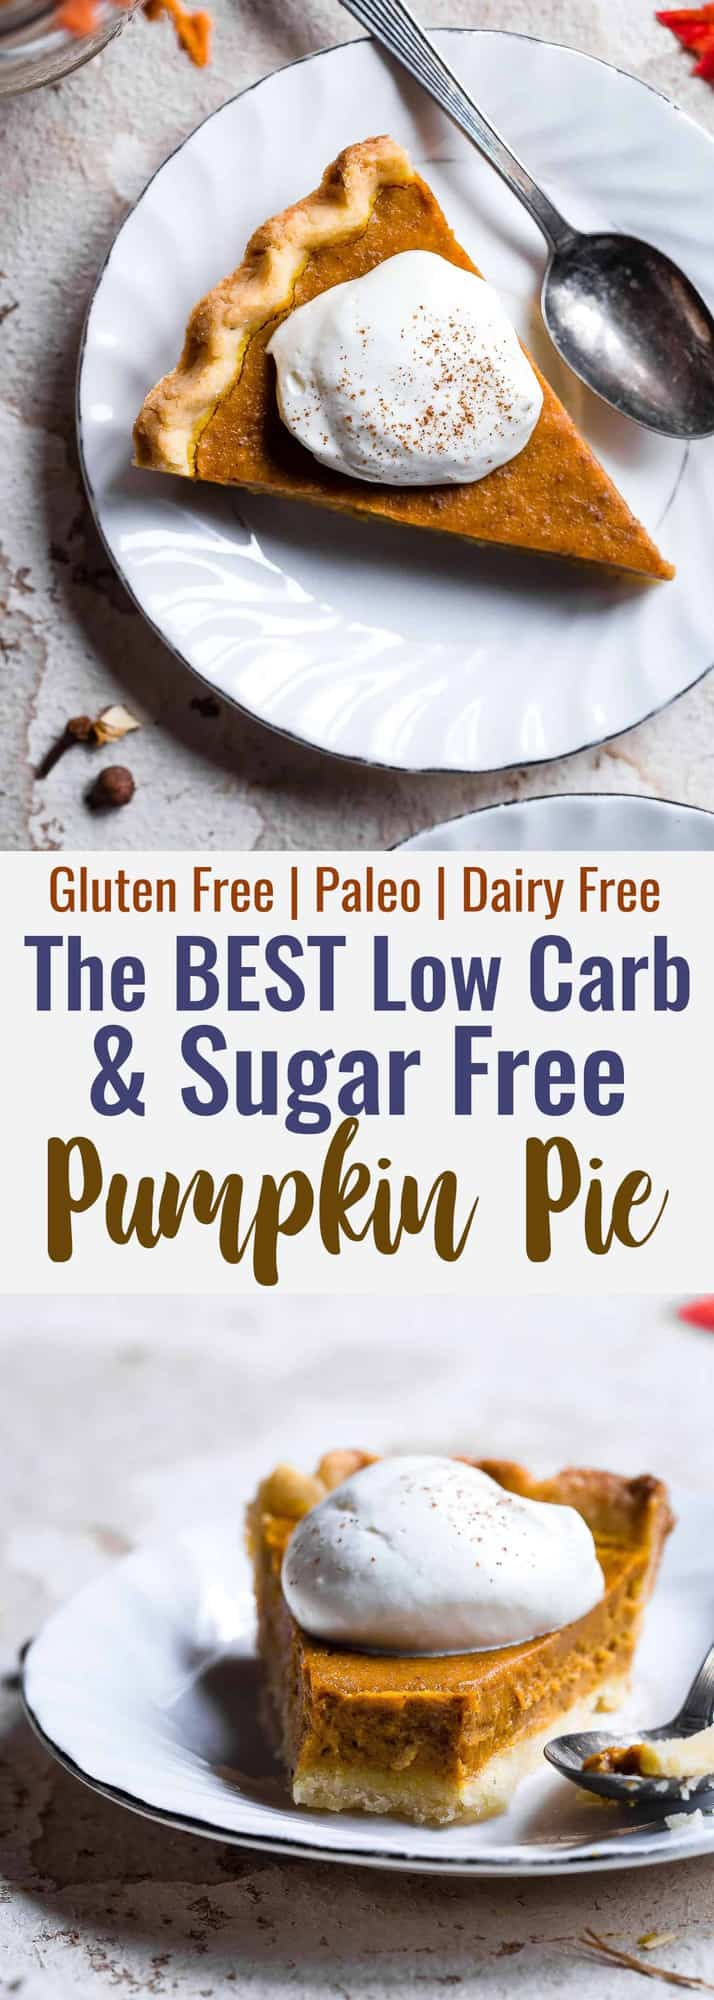 The BEST Low Carb Sugar Free Pumpkin Pie - This paleo friendly, sugar free pumpkin pie is SO delicious, you will never know it's dairy and gluten free and only 200 calories a slice! Everyone will want this recipe! | #Foodfaithfitness | #Glutenfree #Sugarfree #Paleo #Lowcarb #Healthy